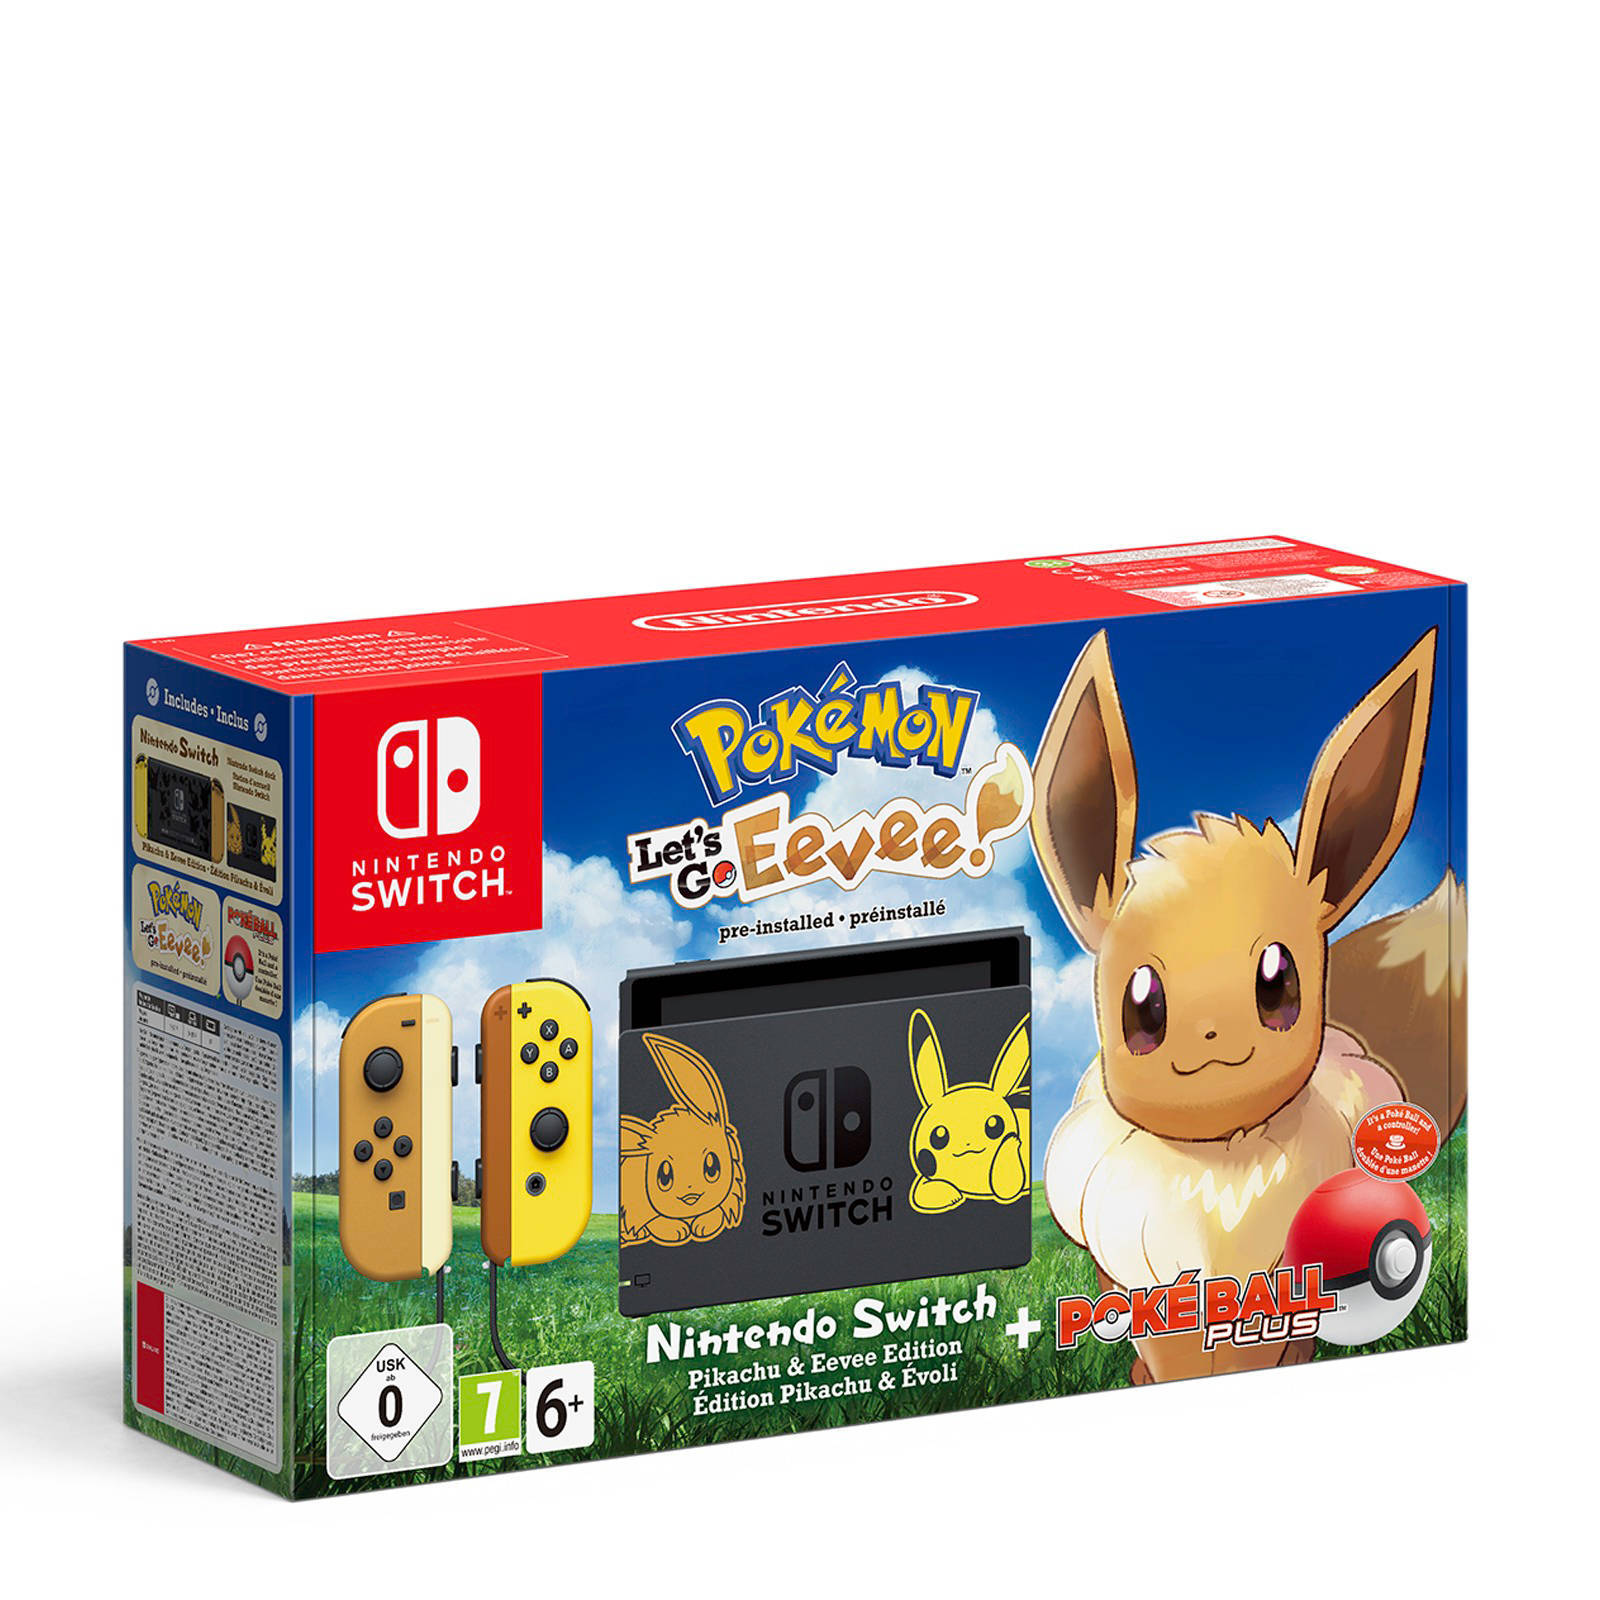 Nintendo Switch  Pokémon Let's Go Eevee bundel